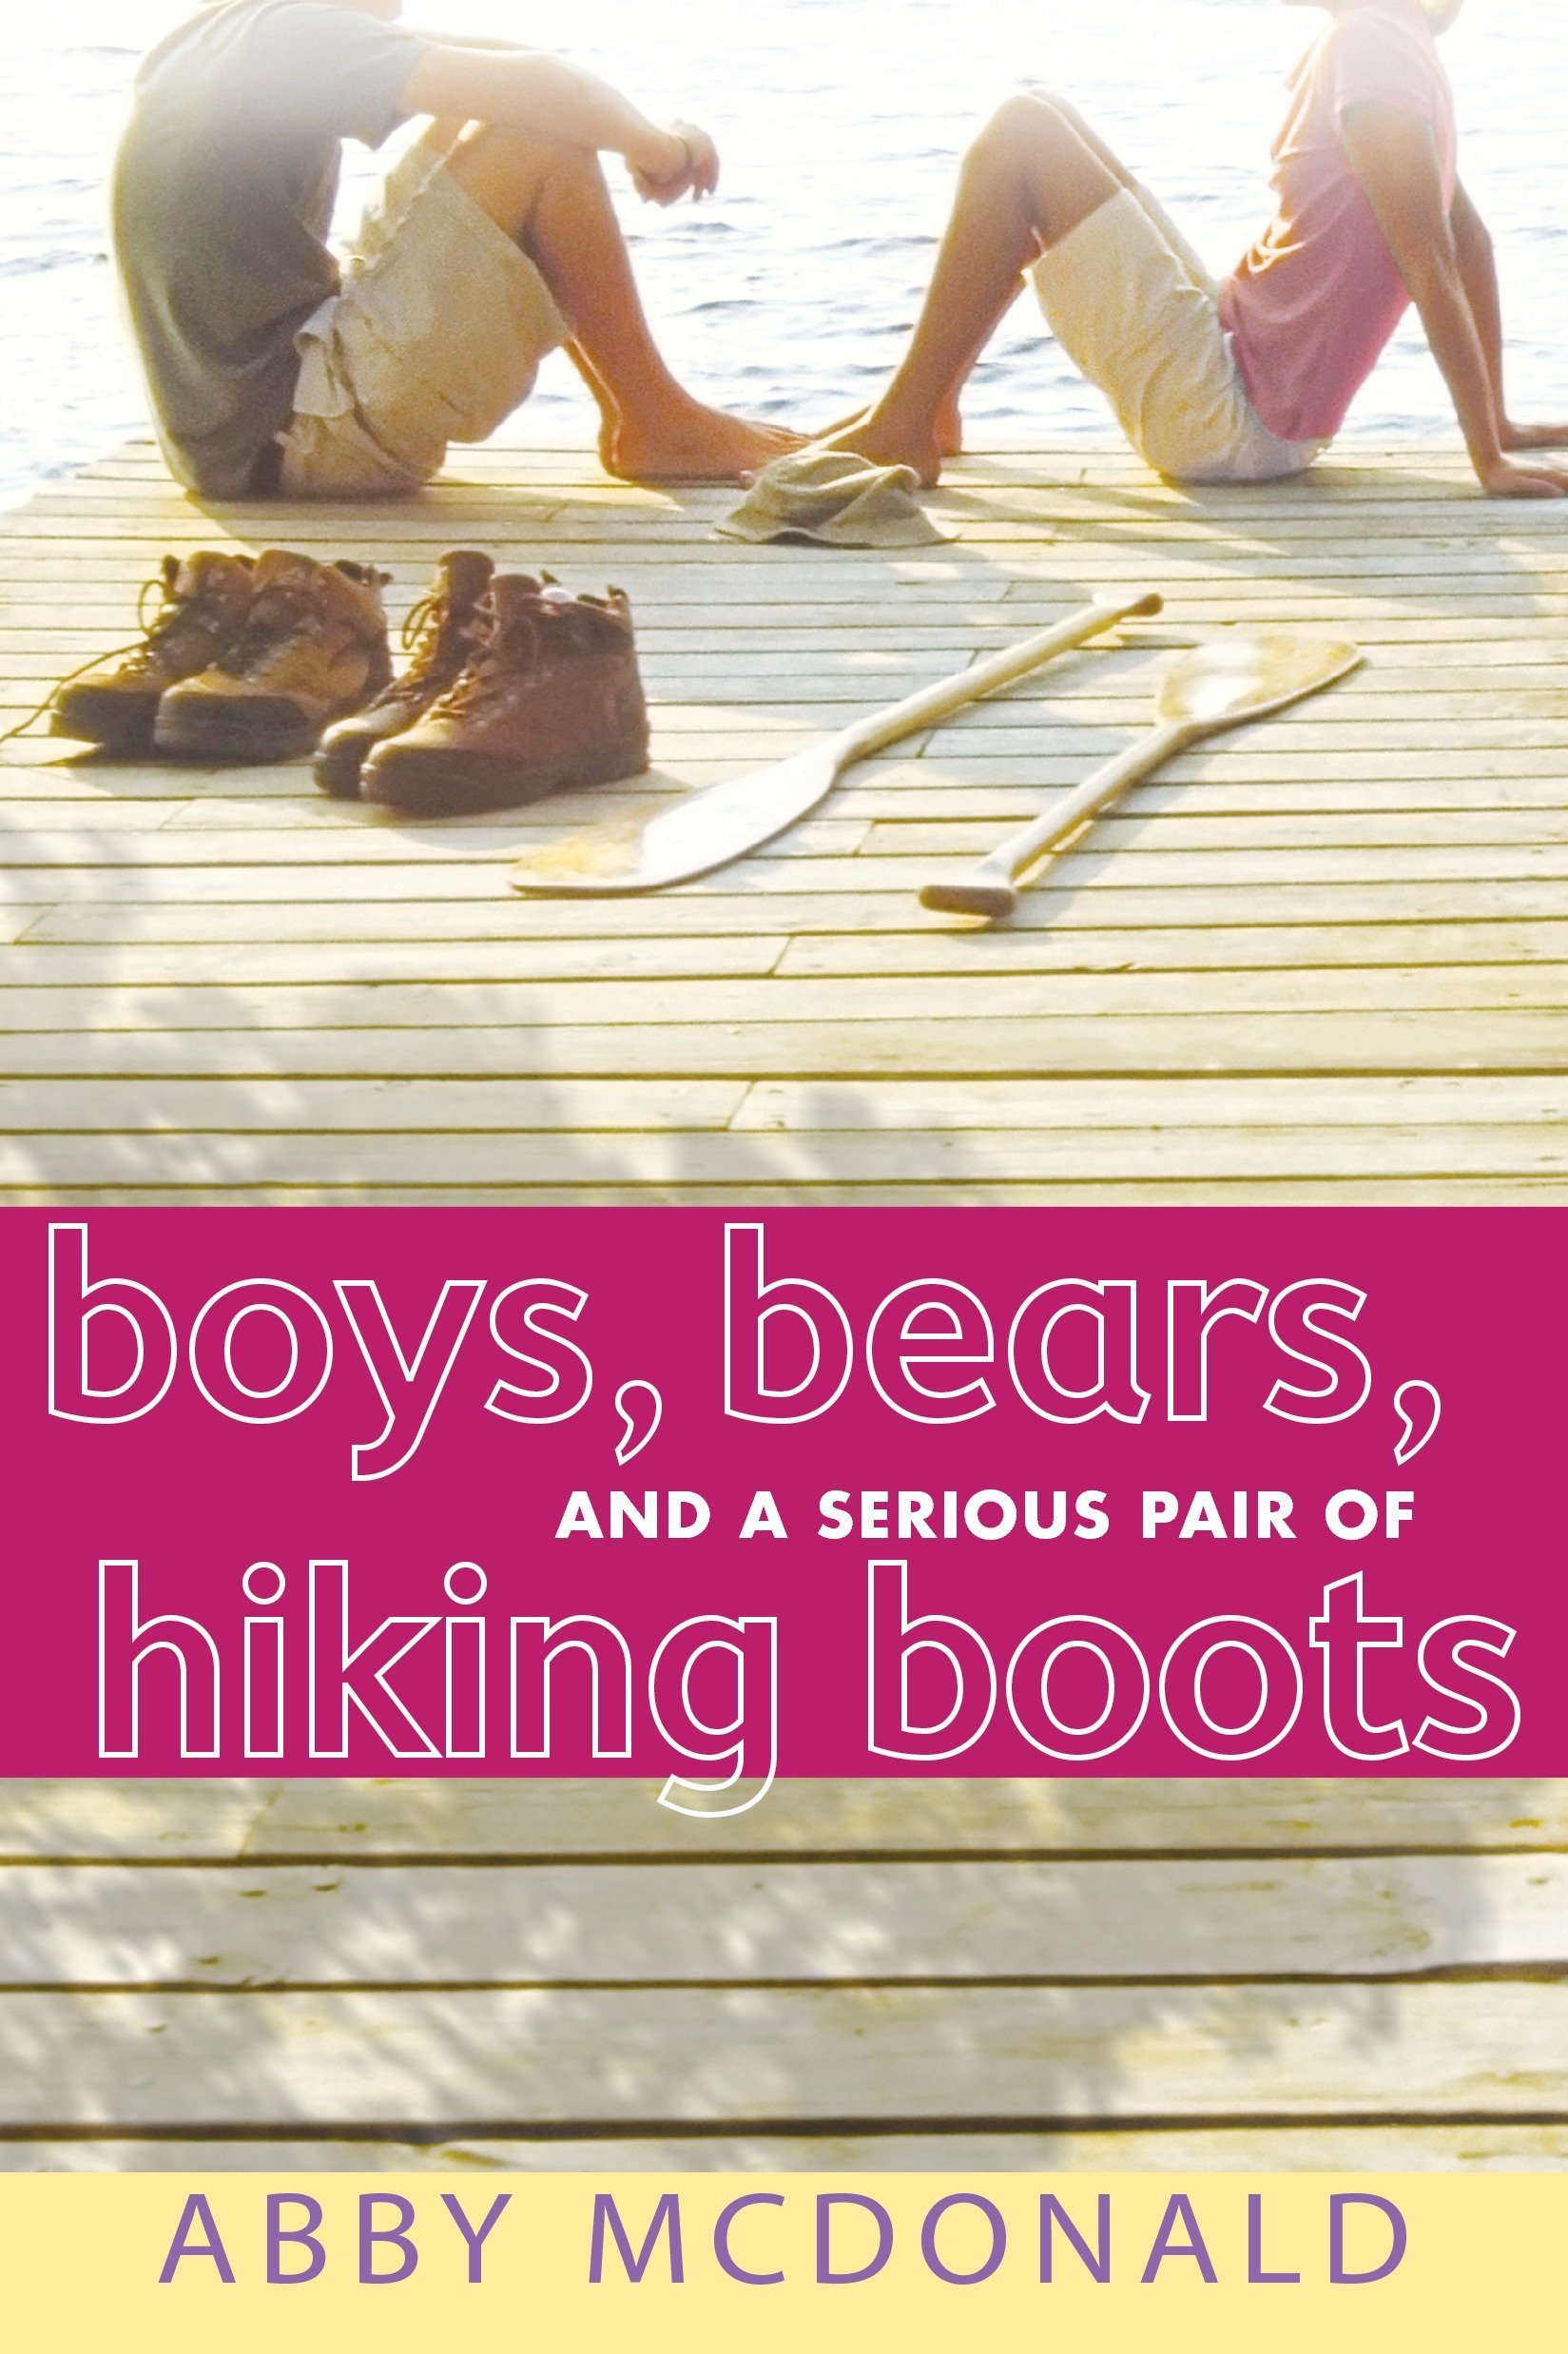 Read Online Boys, Bears, and a Serious Pair of Hiking Boots pdf